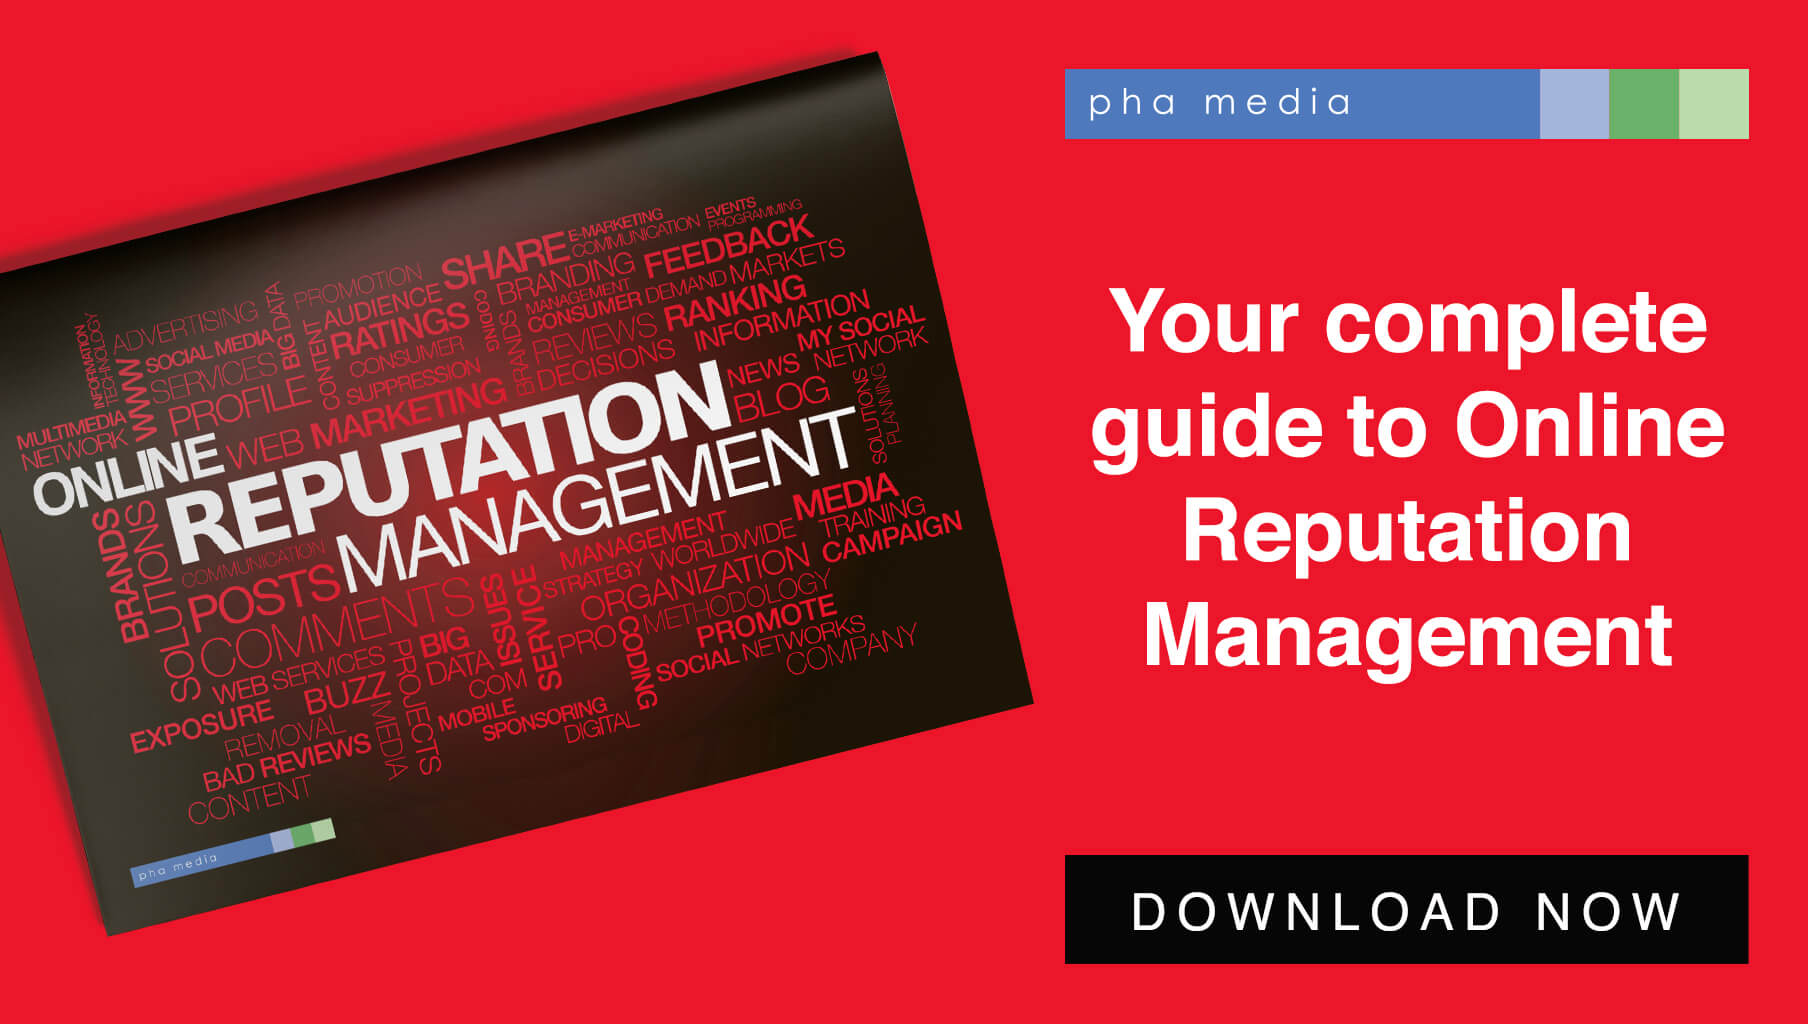 Online reputation management ebook - The PHA Group